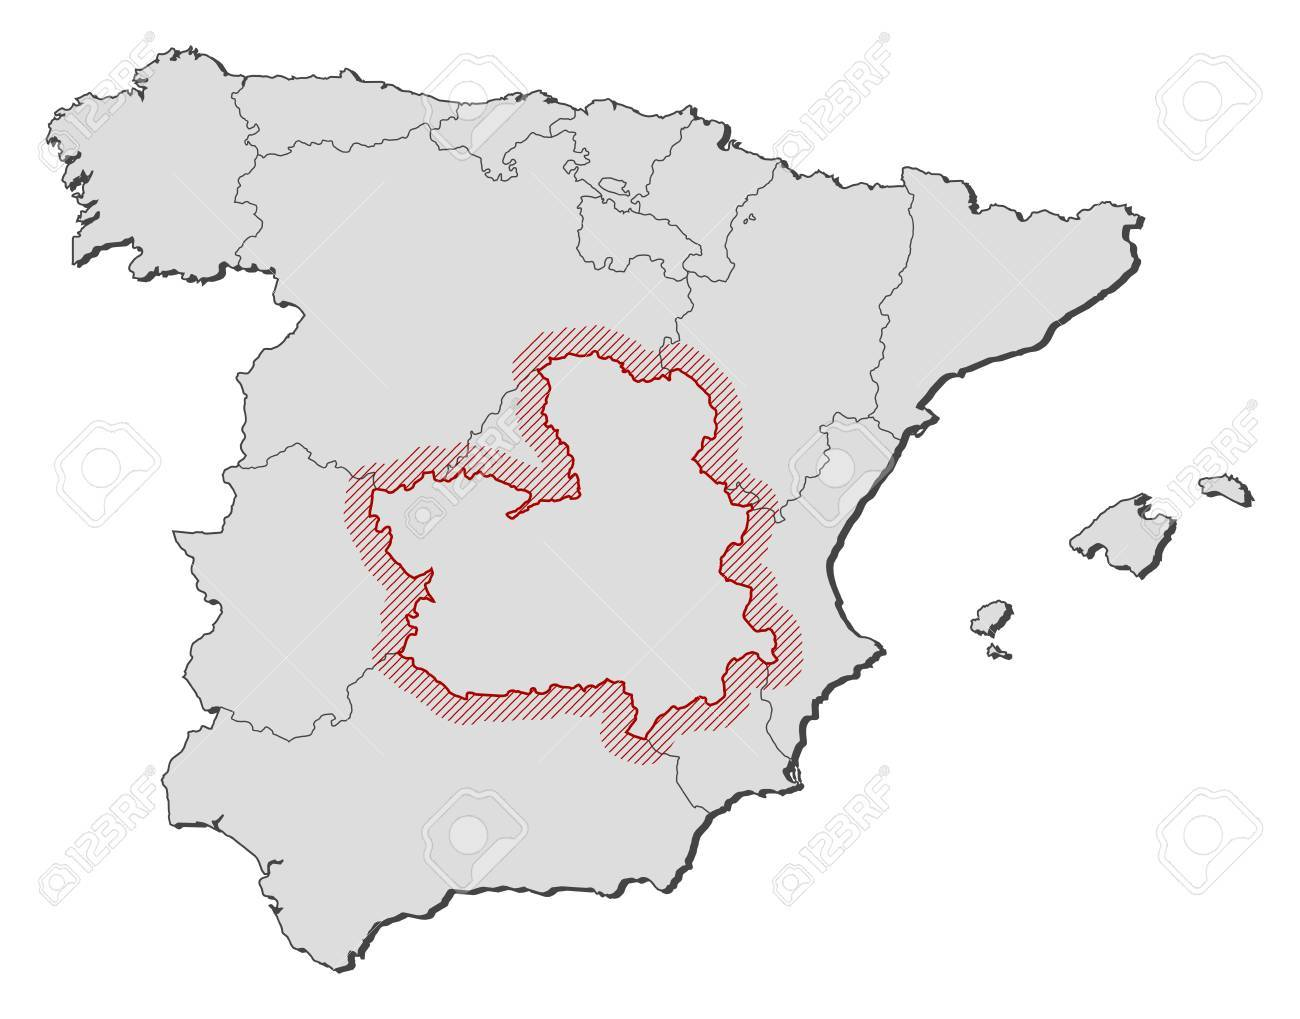 Map Of Spain With The Provinces CastileLa Mancha Is Highlighted